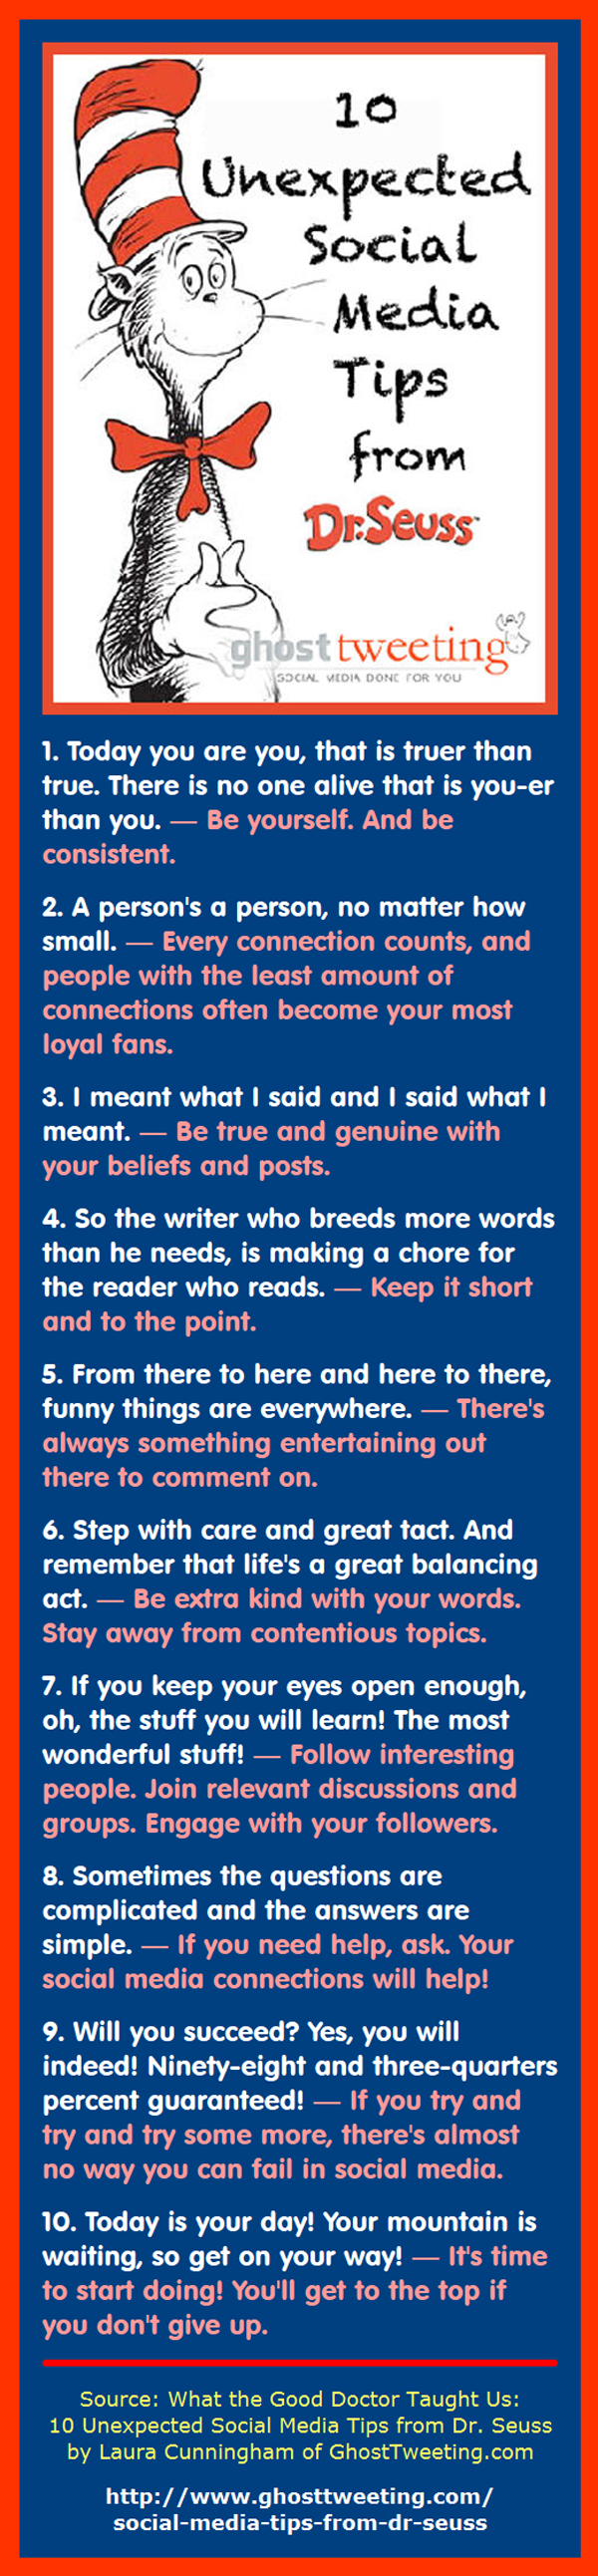 10 Social Media Tips from Dr. Seuss